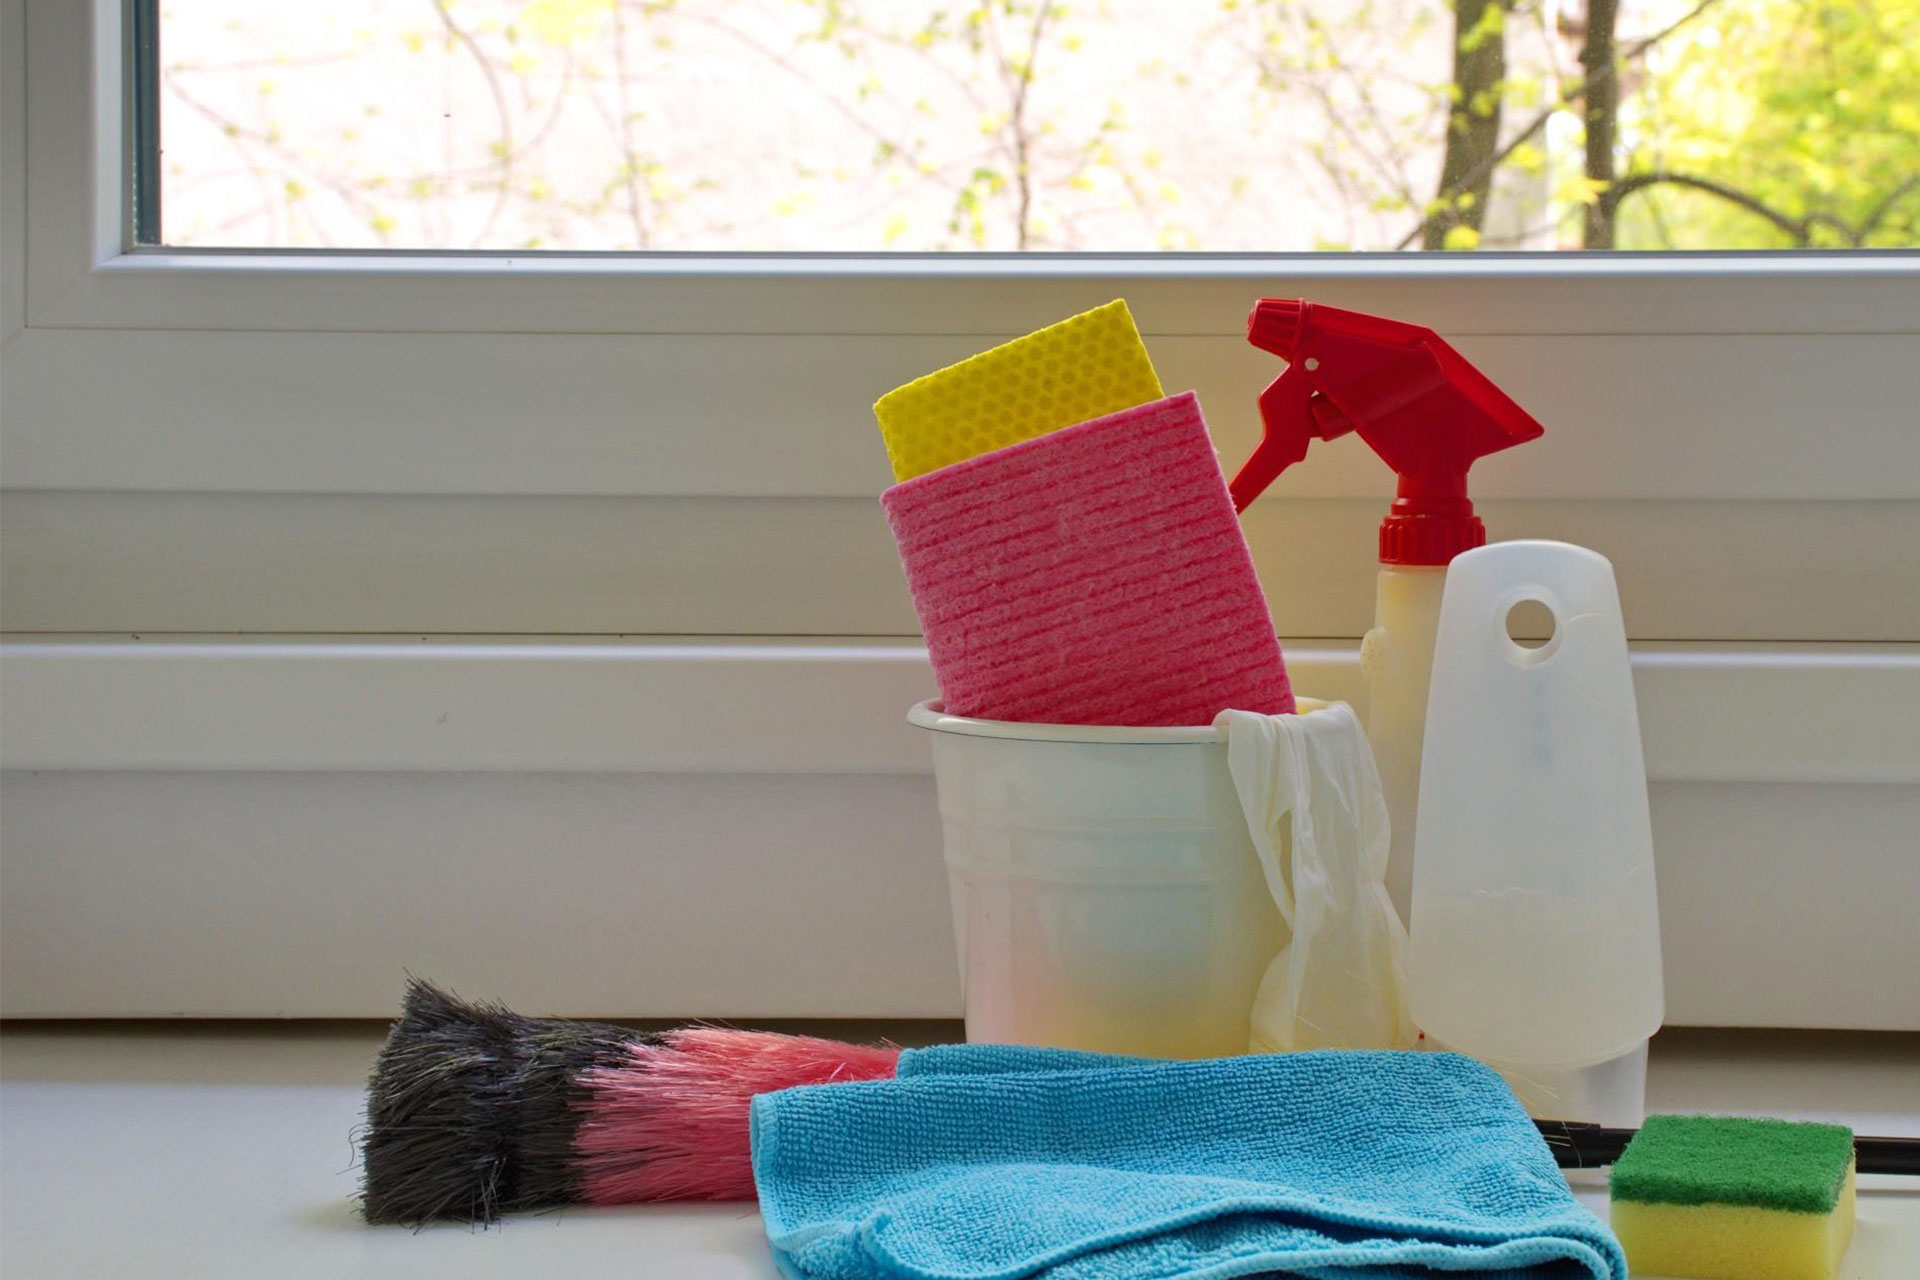 clean the inside and outside of the window